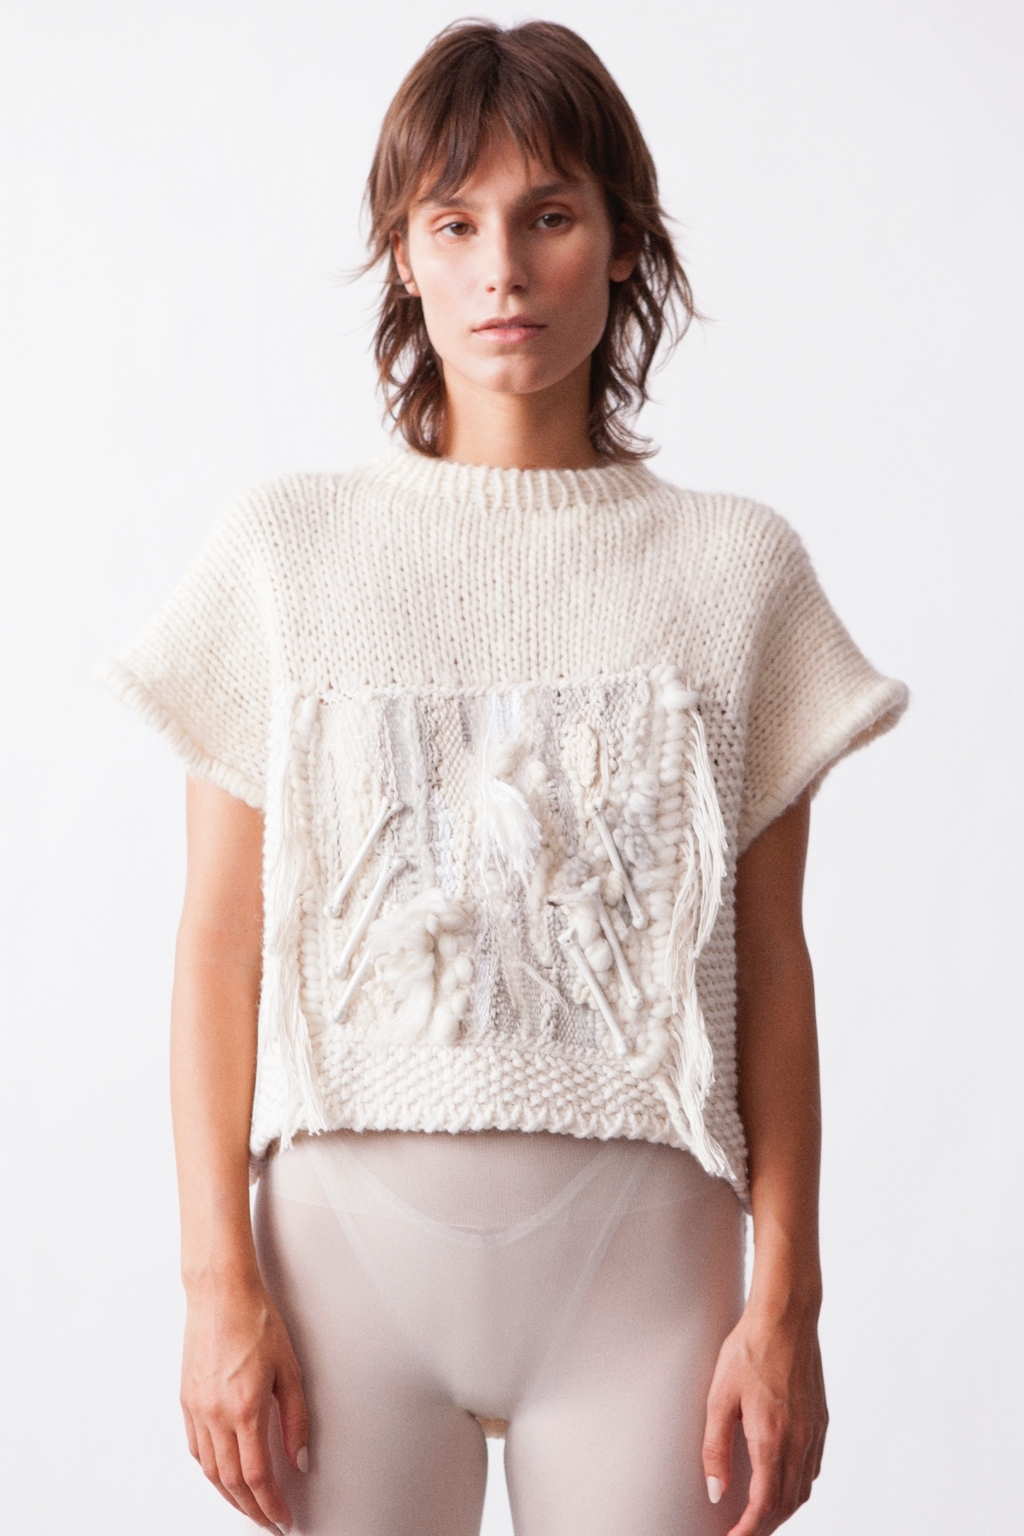 Off white tapestry sleeveless sweater with porcelain bones by ANDRESGALLARDO